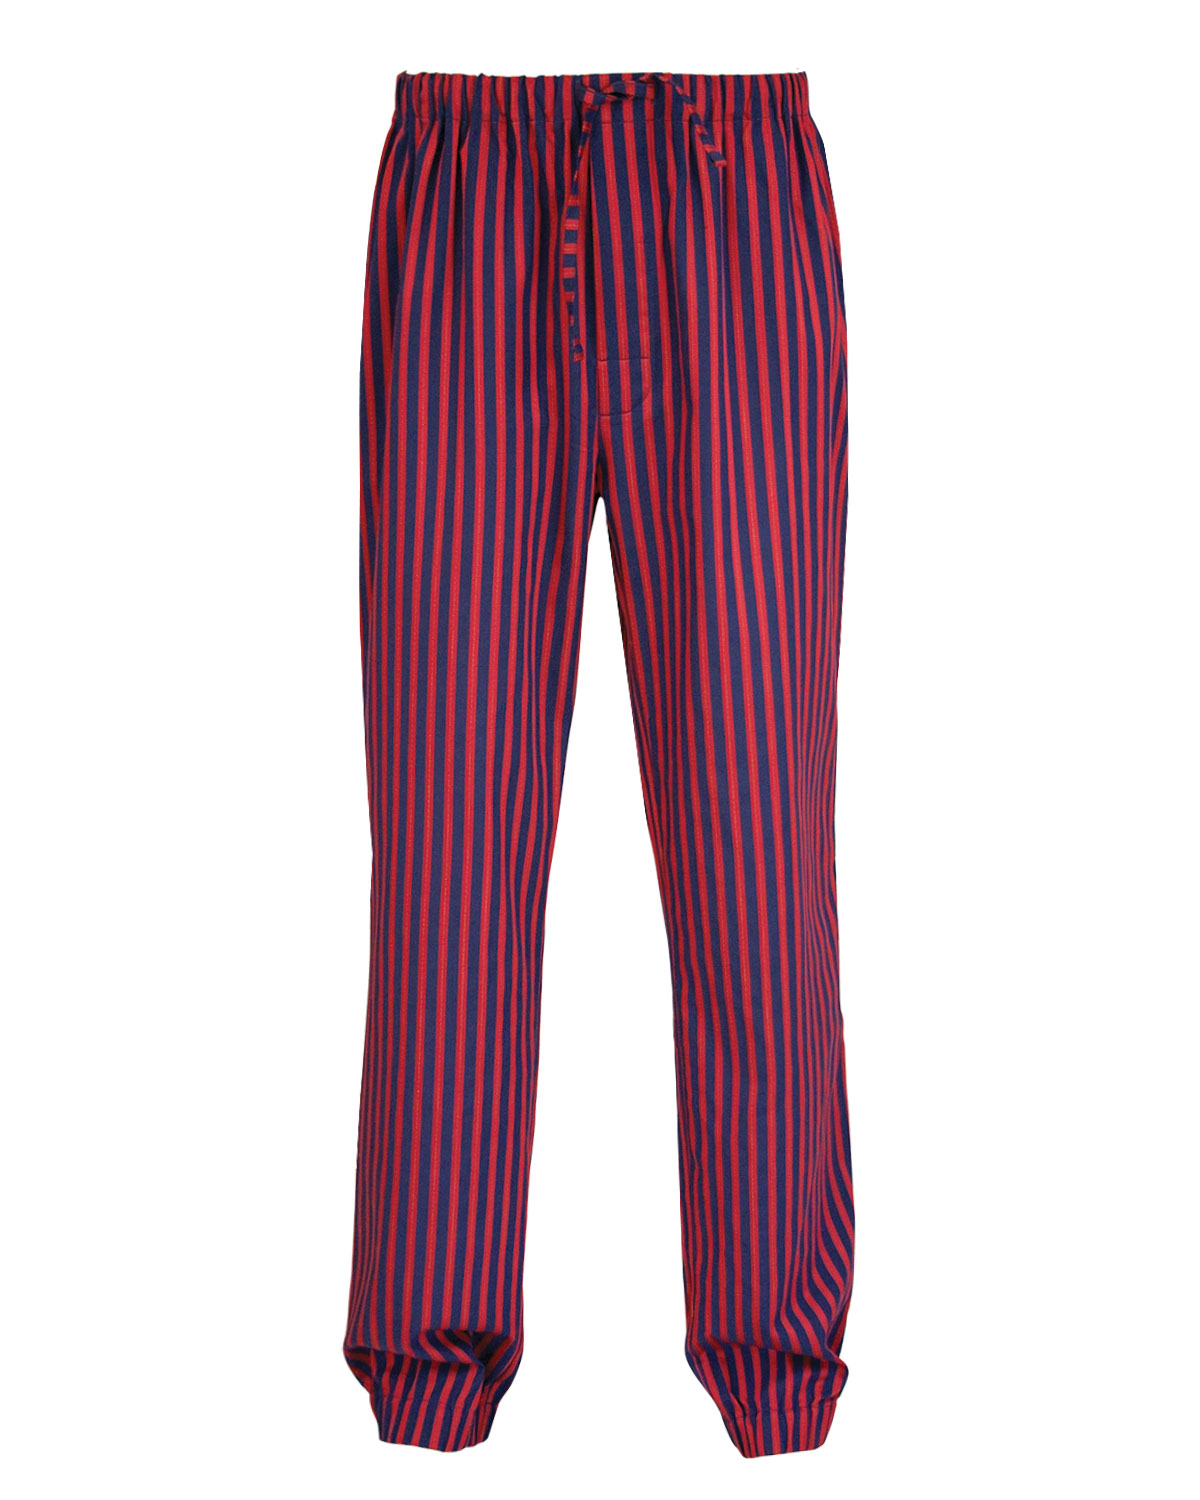 Lounge Pants Sateen Cotton Burgundy-Blue Hamilton Collection